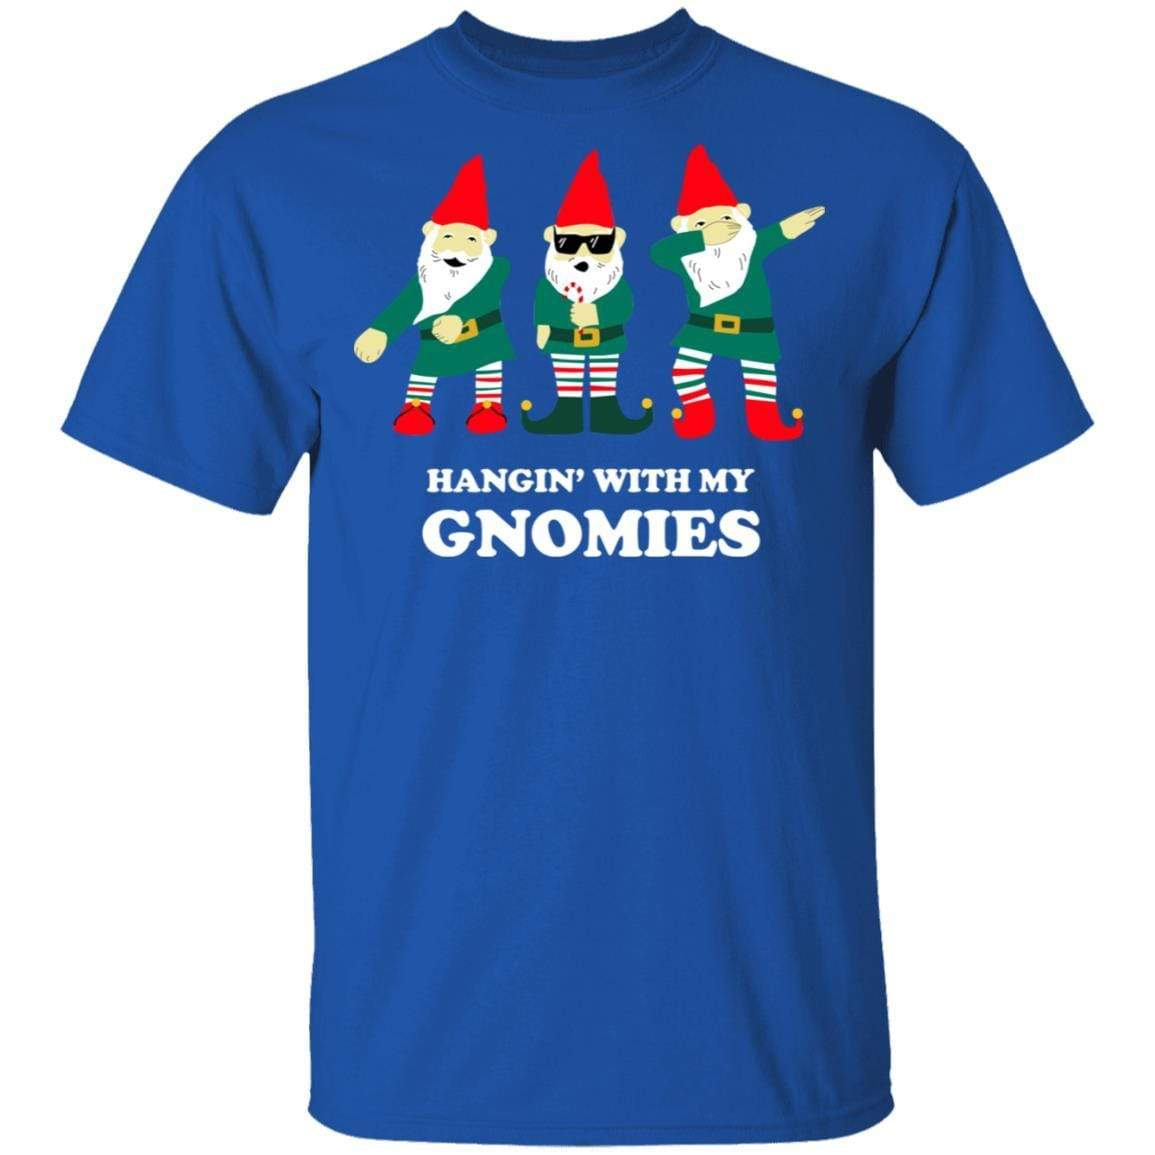 Hangin' With My Gnomies T-Shirts, Hoodies 1049-9971-89726580-48286 - Tee Ript